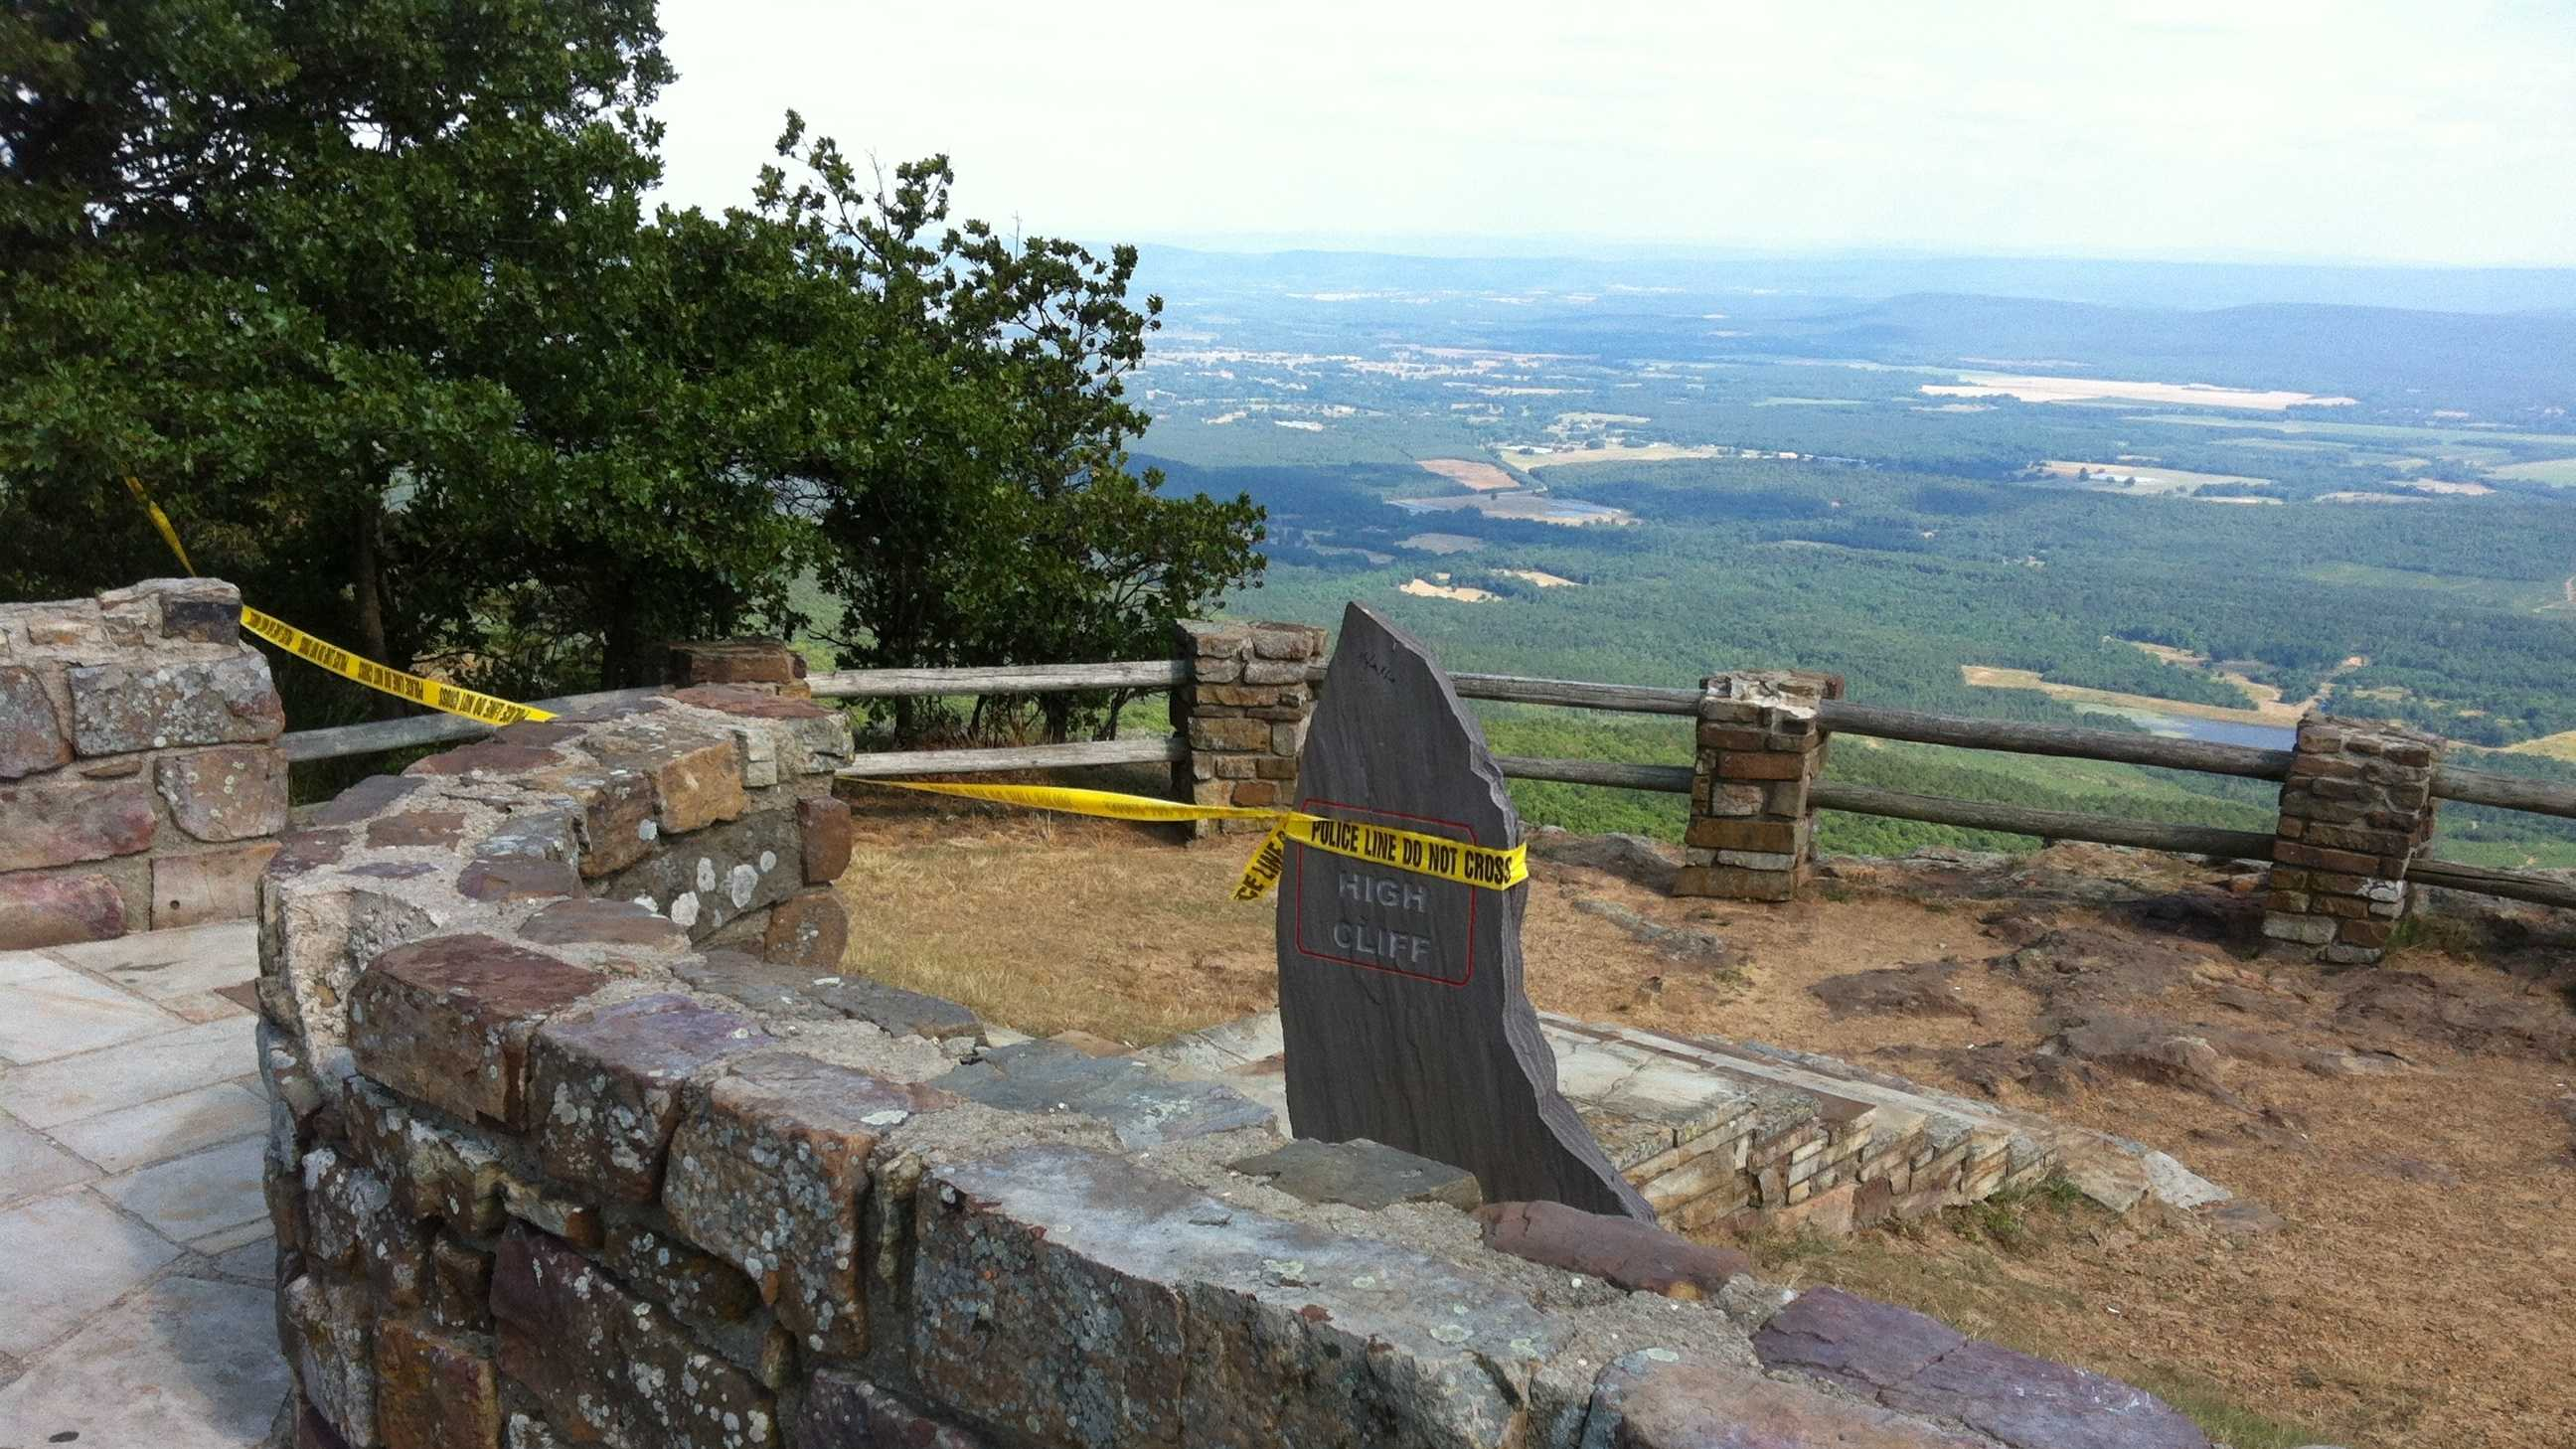 Petit Jean River Valley Overlook